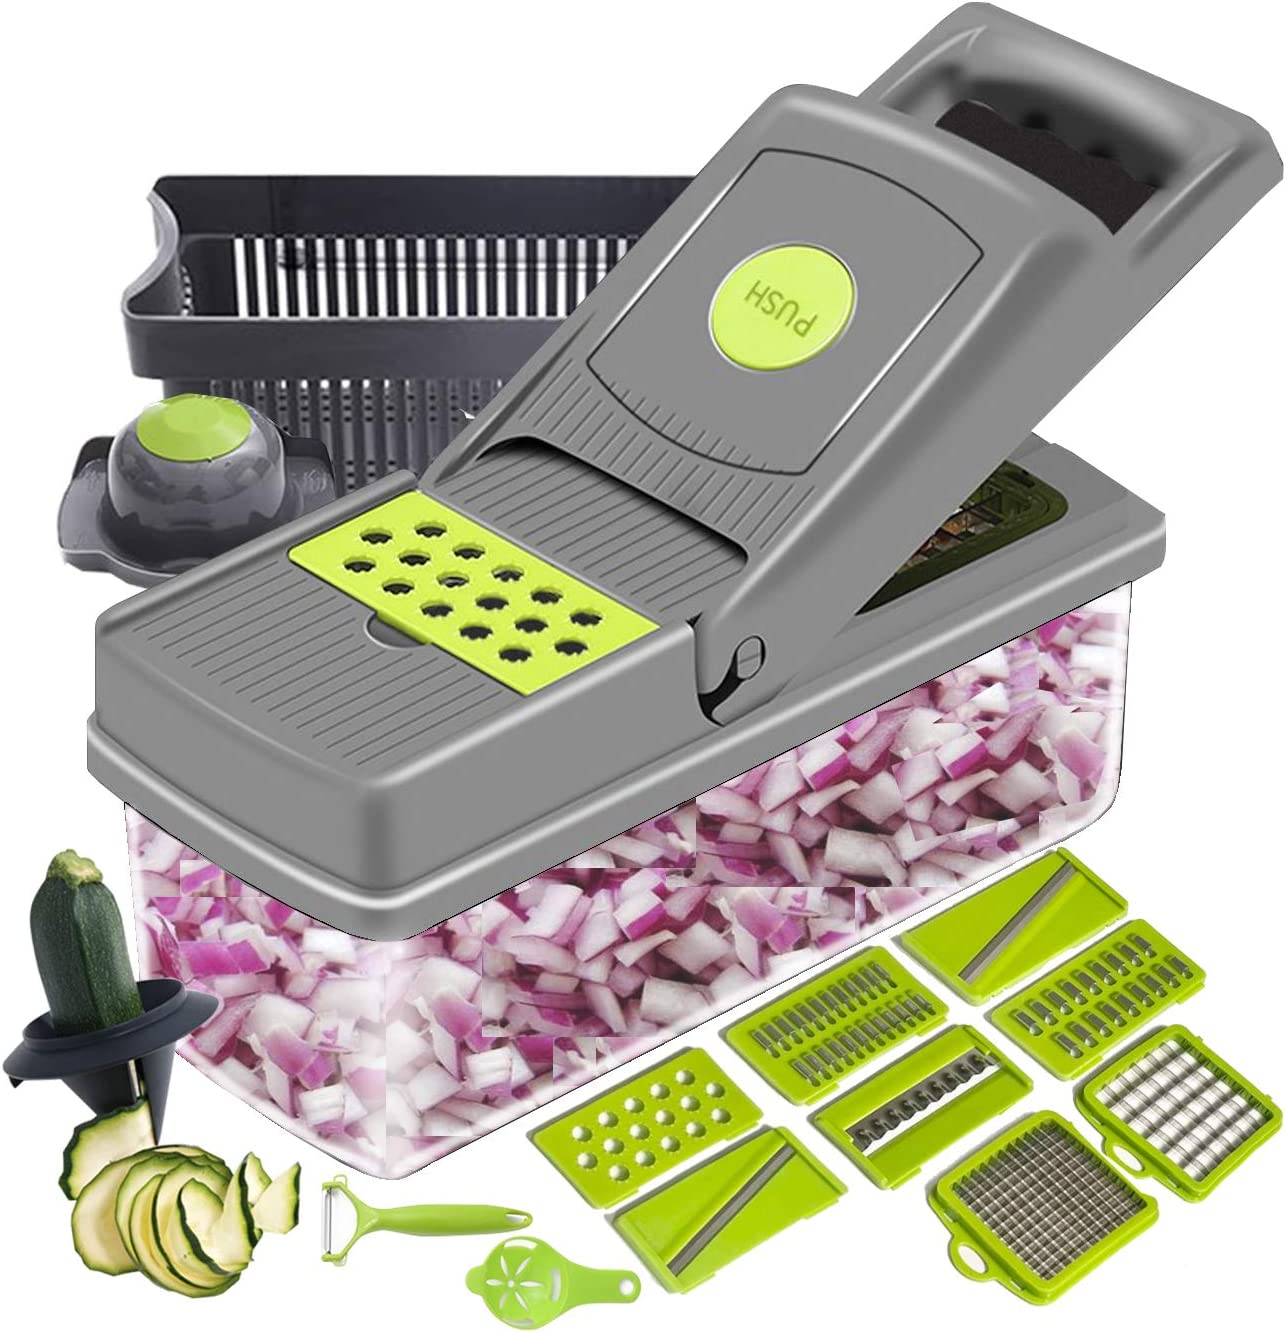 ZeeMart Mandoline Slicer Cutter Chopper and Grater, 15 in 1 Veggie Chopper with Spiralizer Tools, Tomato Carrot Cutter Salad Potato Cheese Slicer with Container